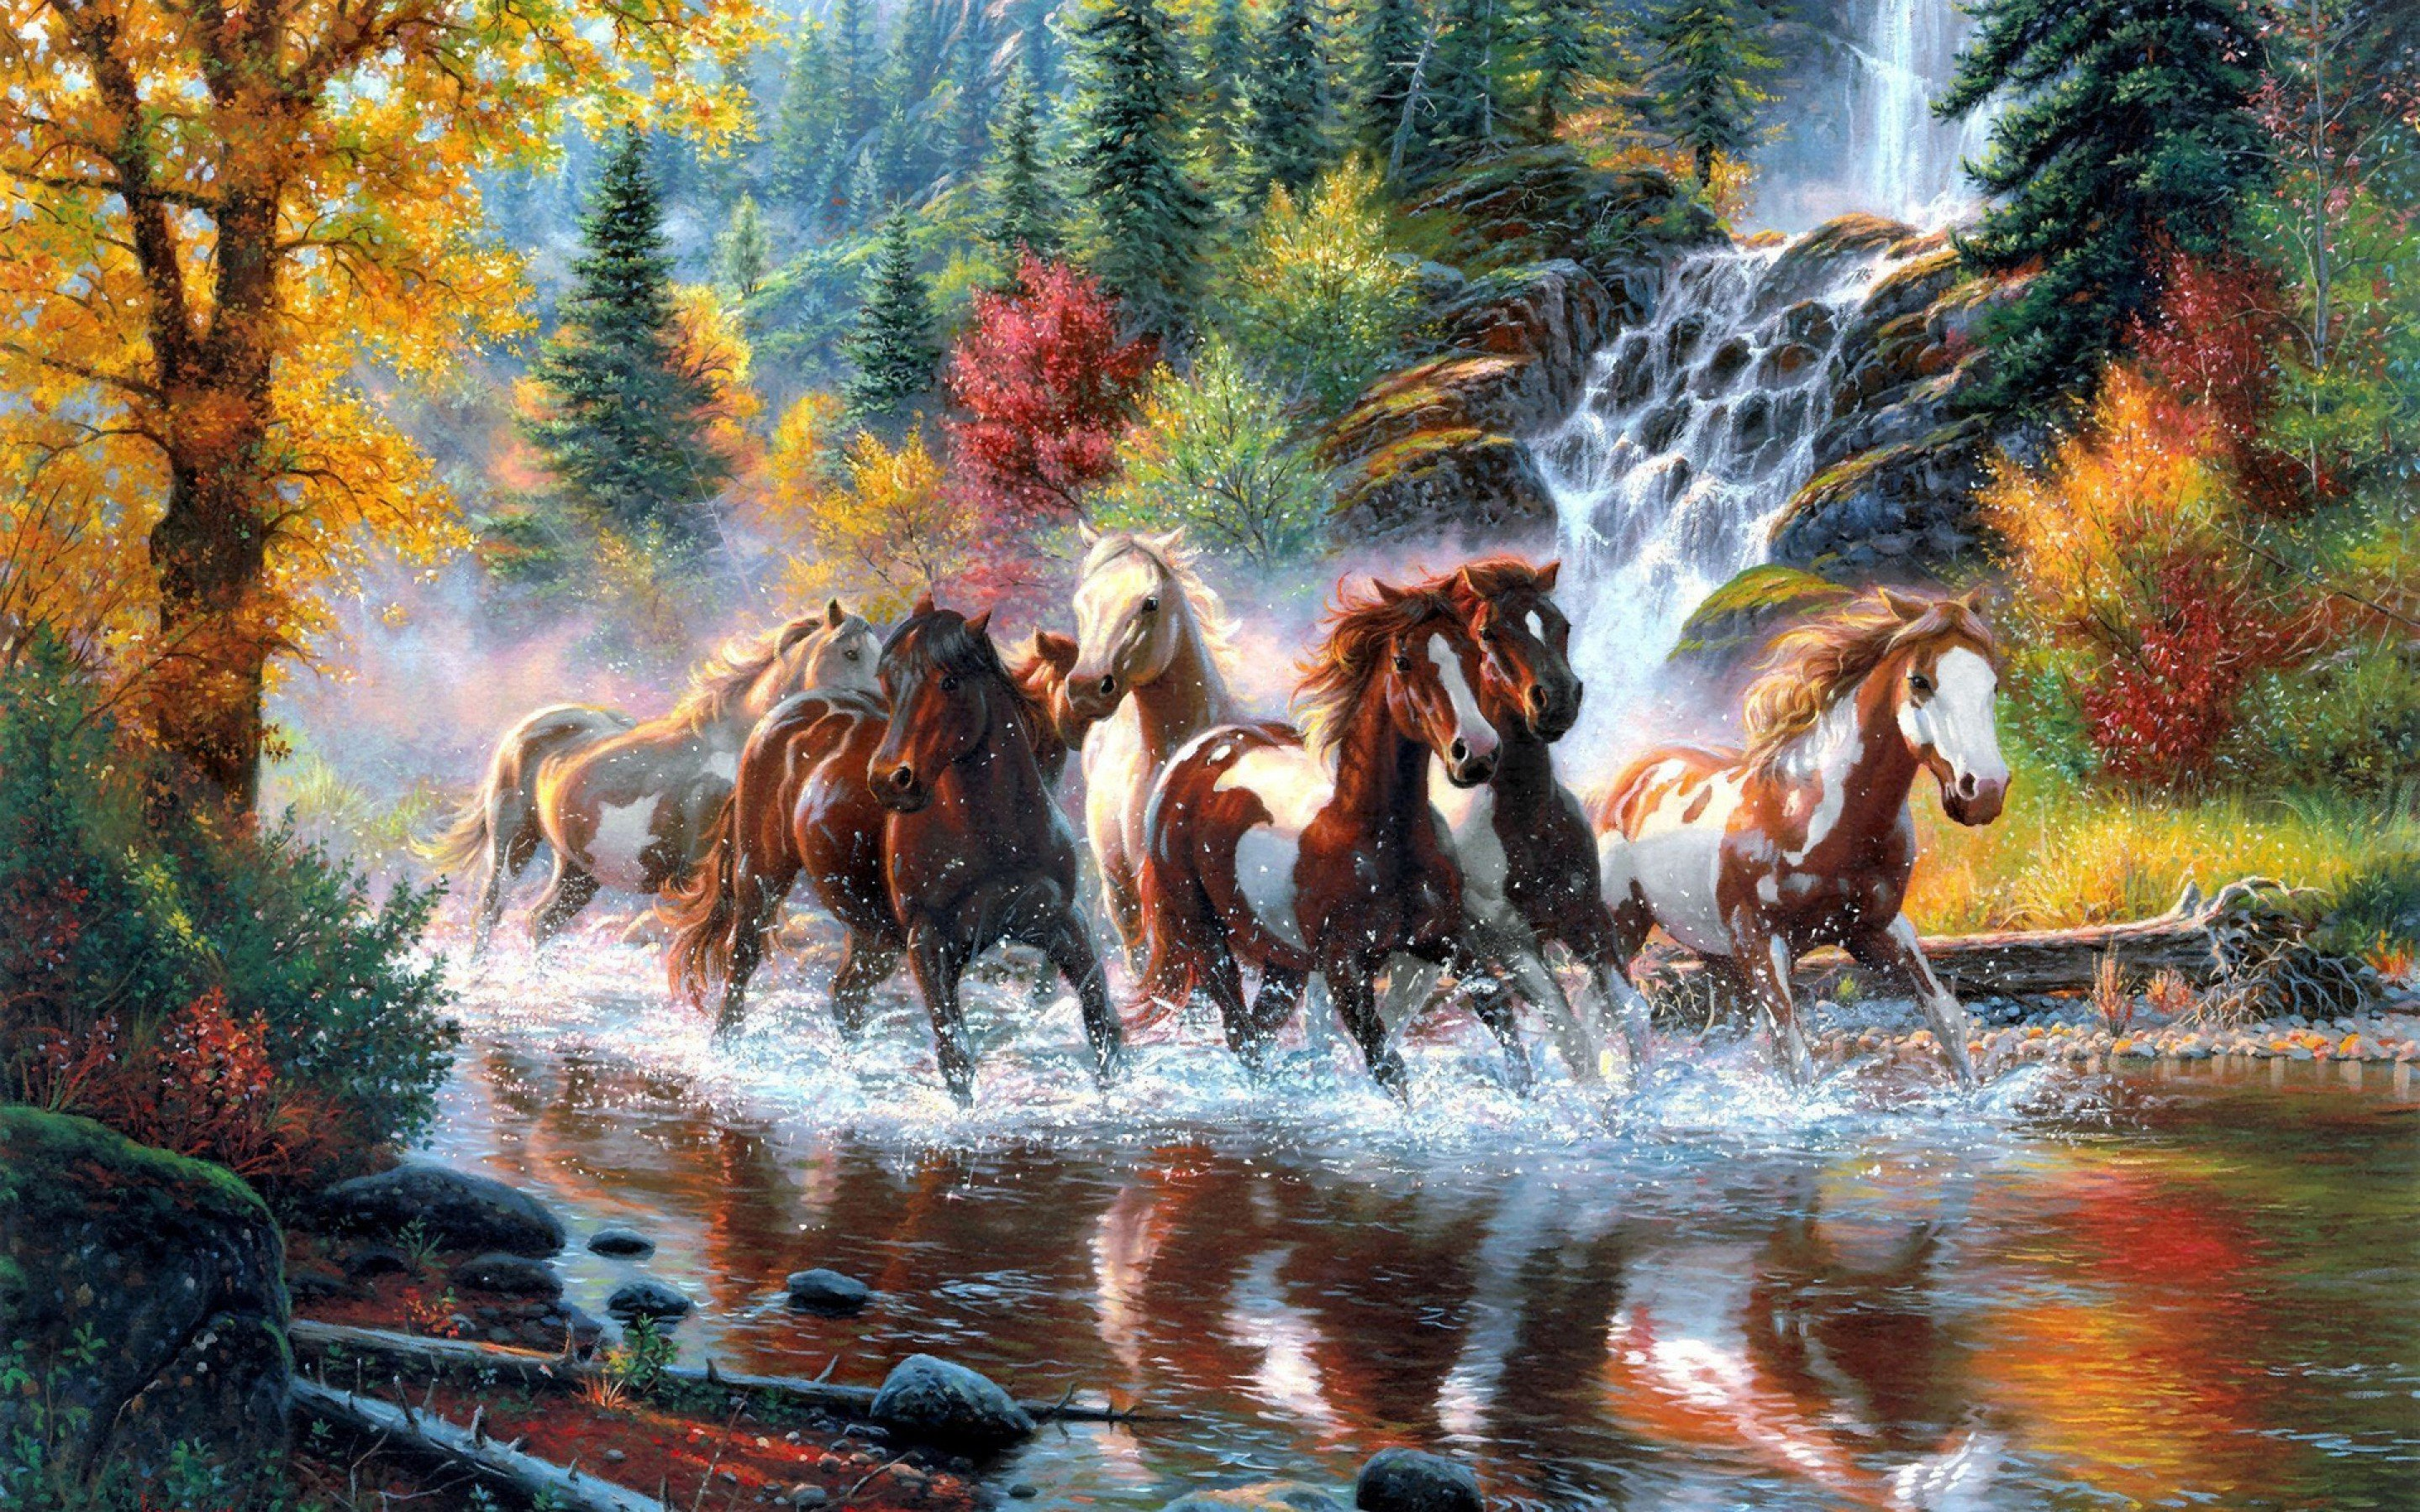 autumn country wester native american indian wallpaper 2880x1800 2880x1800